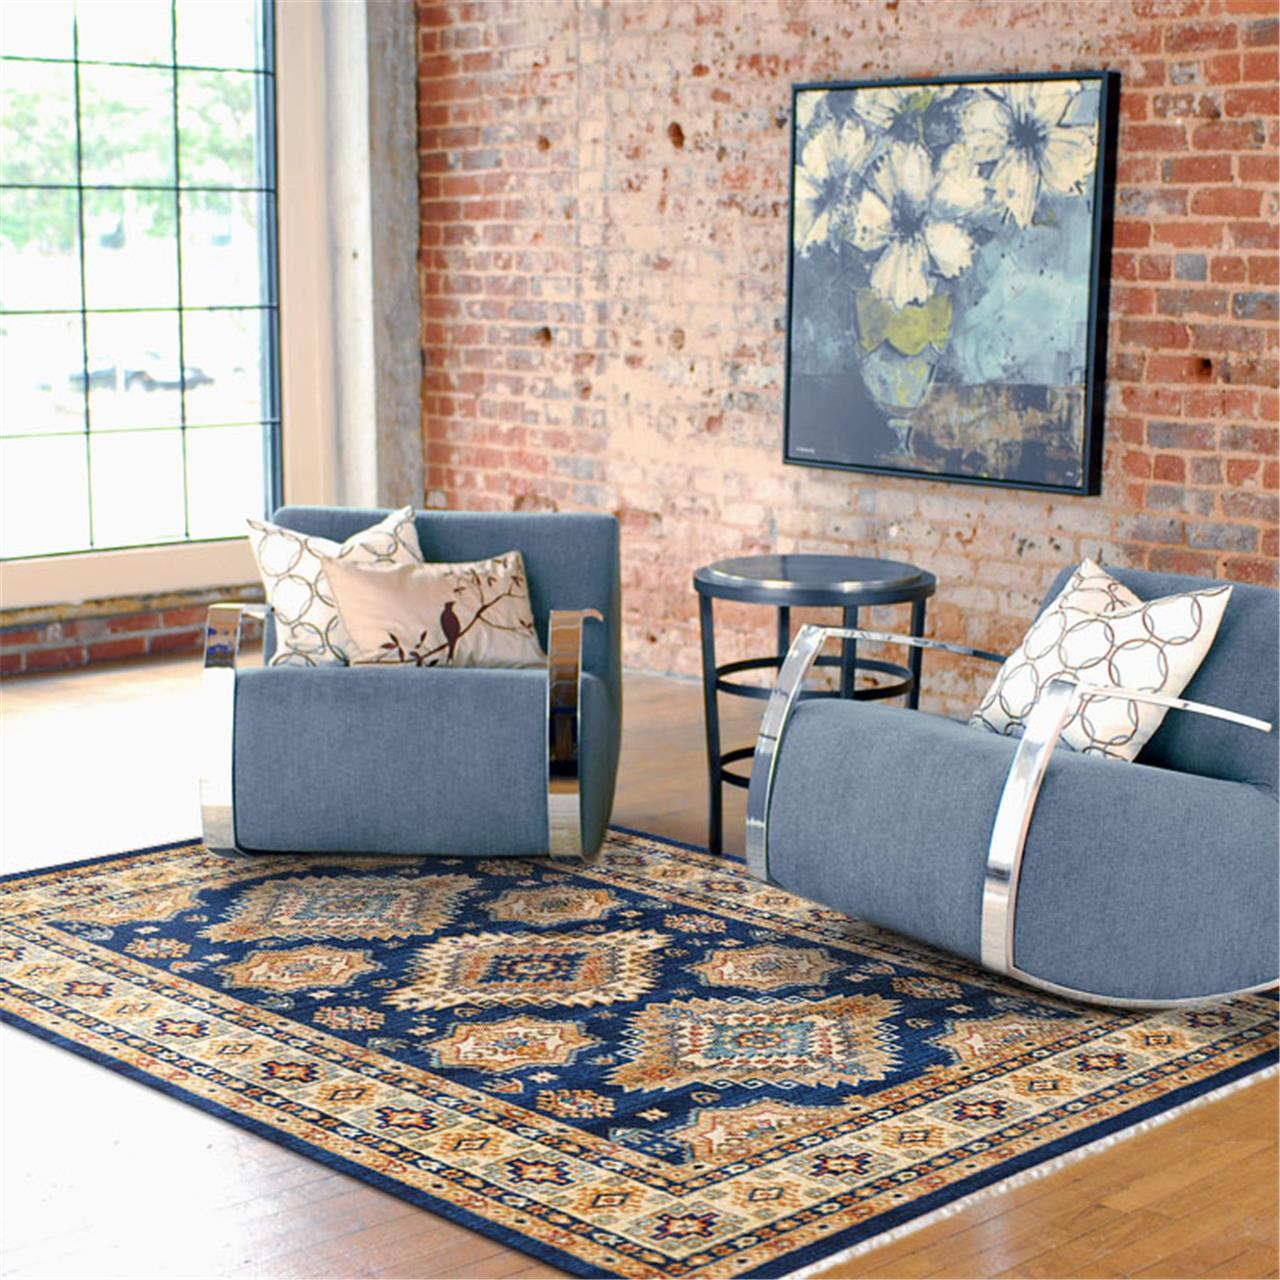 UNIQUE DESIGN NAVY BLUE RUG - Store Zone-Online Shopping Store Melbourne Australia